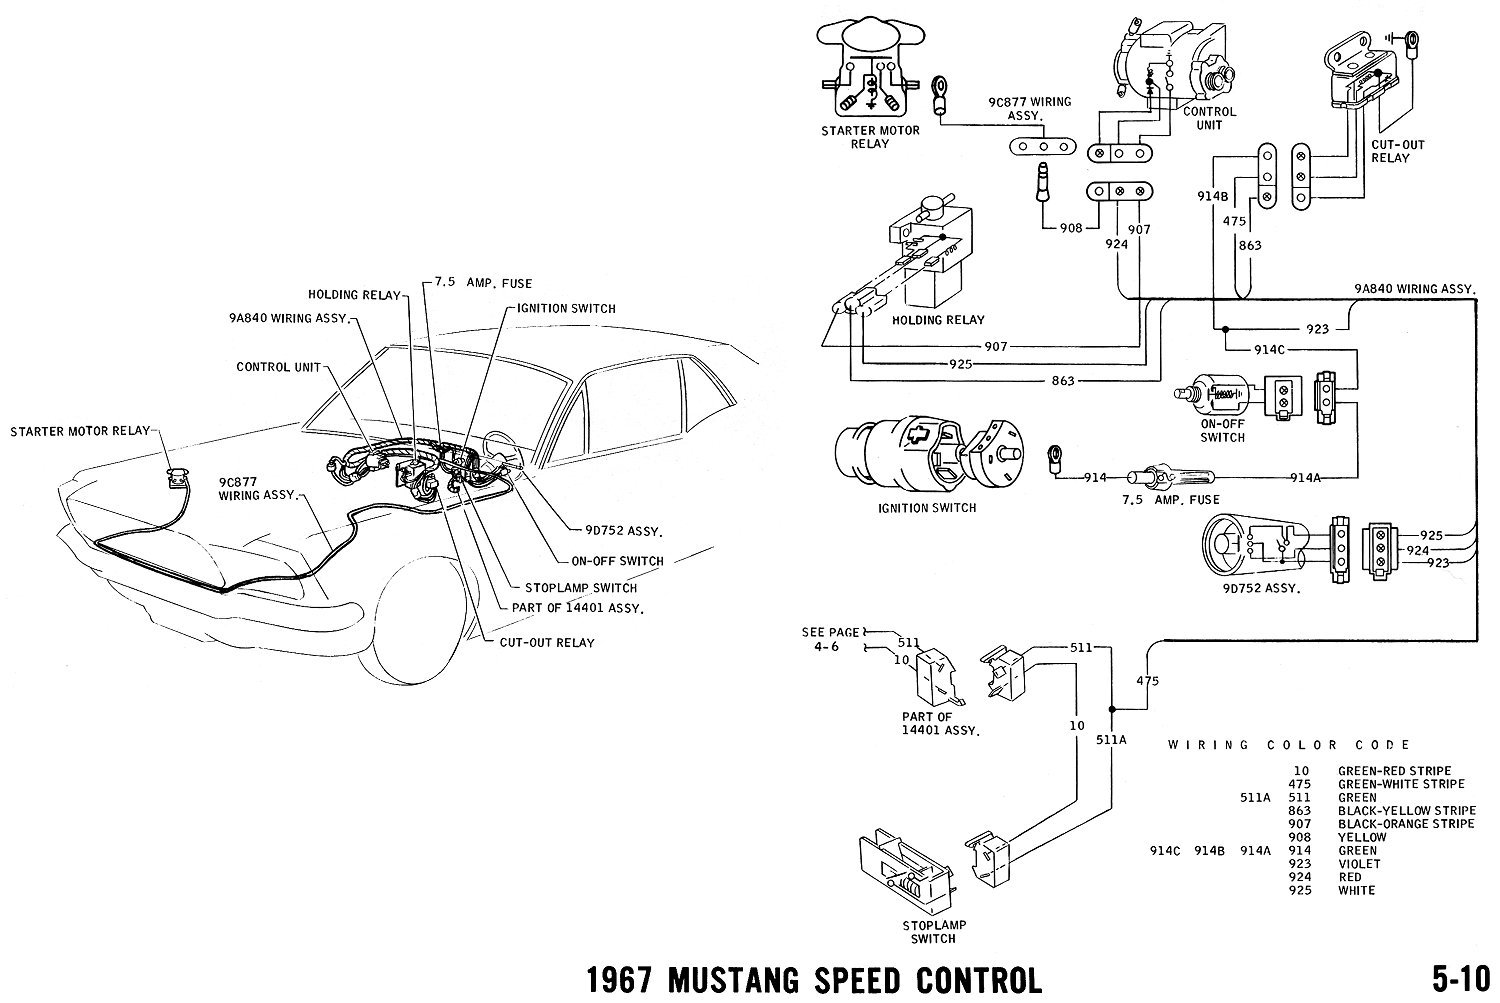 1967 mustang engine transmission diagram data wiring diagram1967 mustang wiring and vacuum diagrams average joe restoration 1967 mustang chassis 1967 mustang engine transmission diagram